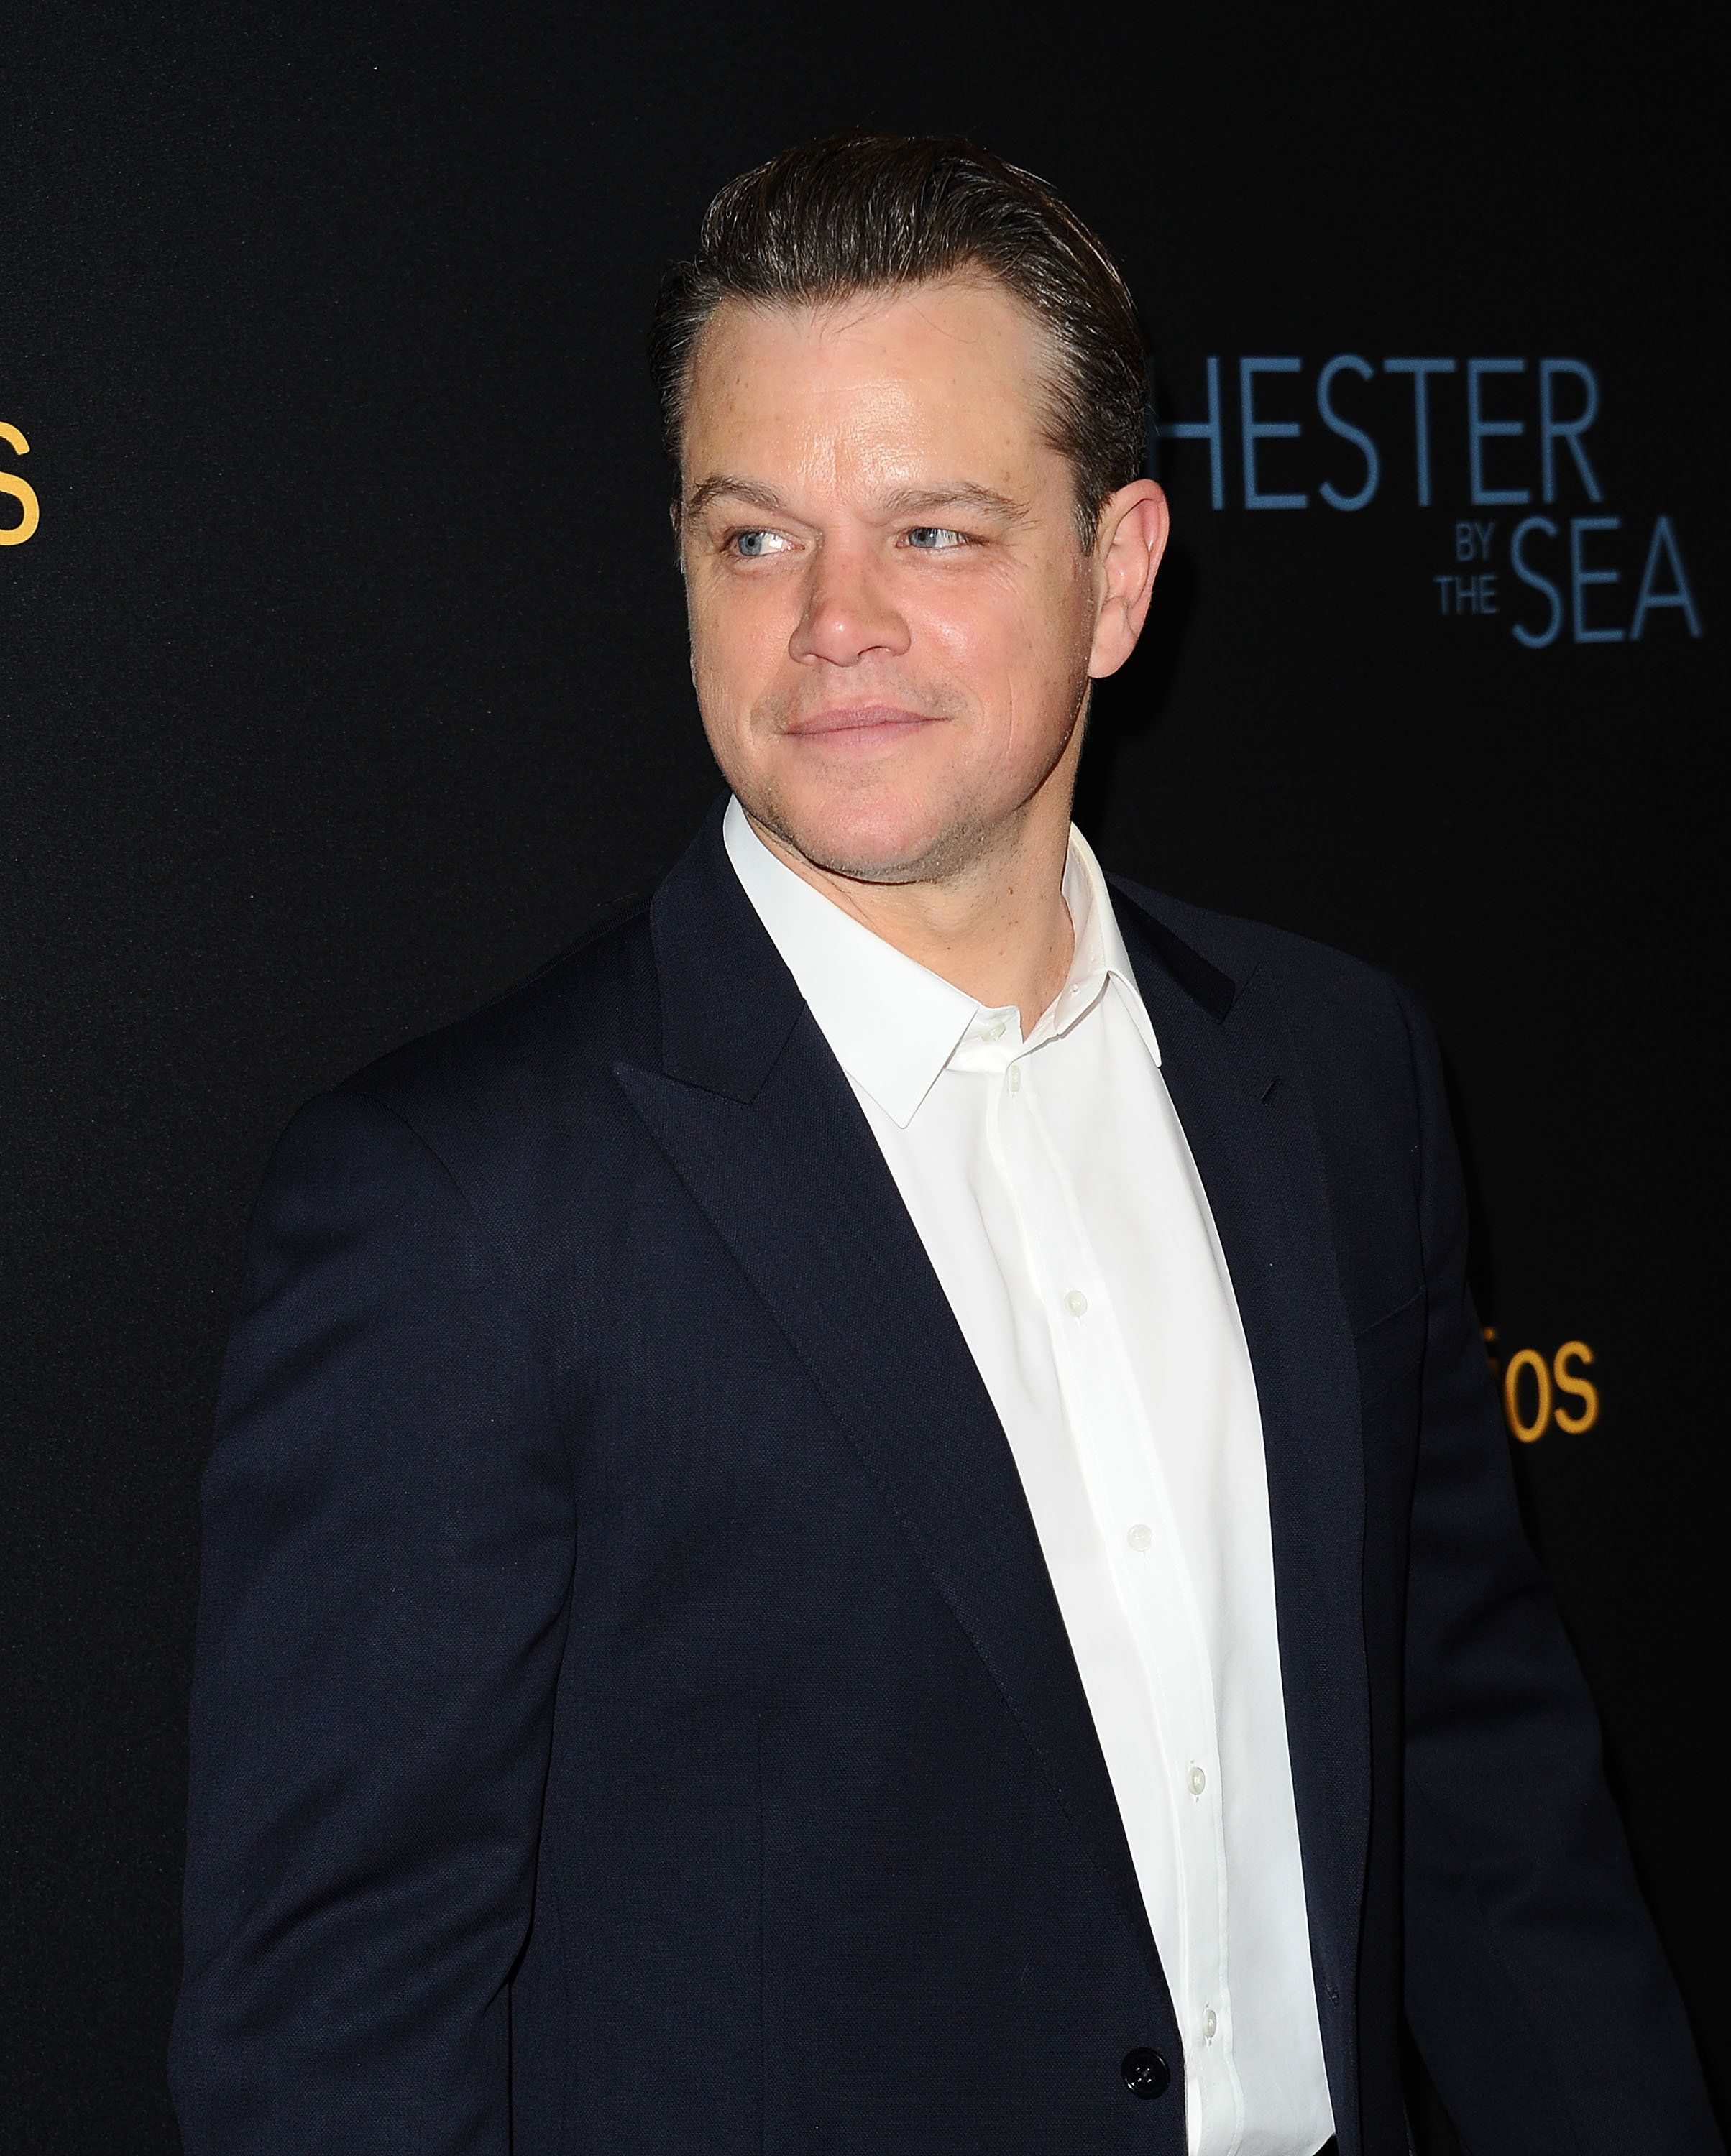 BEVERLY HILLS, CA - NOVEMBER 14:  Producer Matt Damon attends the premiere of 'Manchester by the Sea' at Samuel Goldwyn Theater on November 14, 2016 in Beverly Hills, California.  (Photo by Jason LaVeris/FilmMagic)